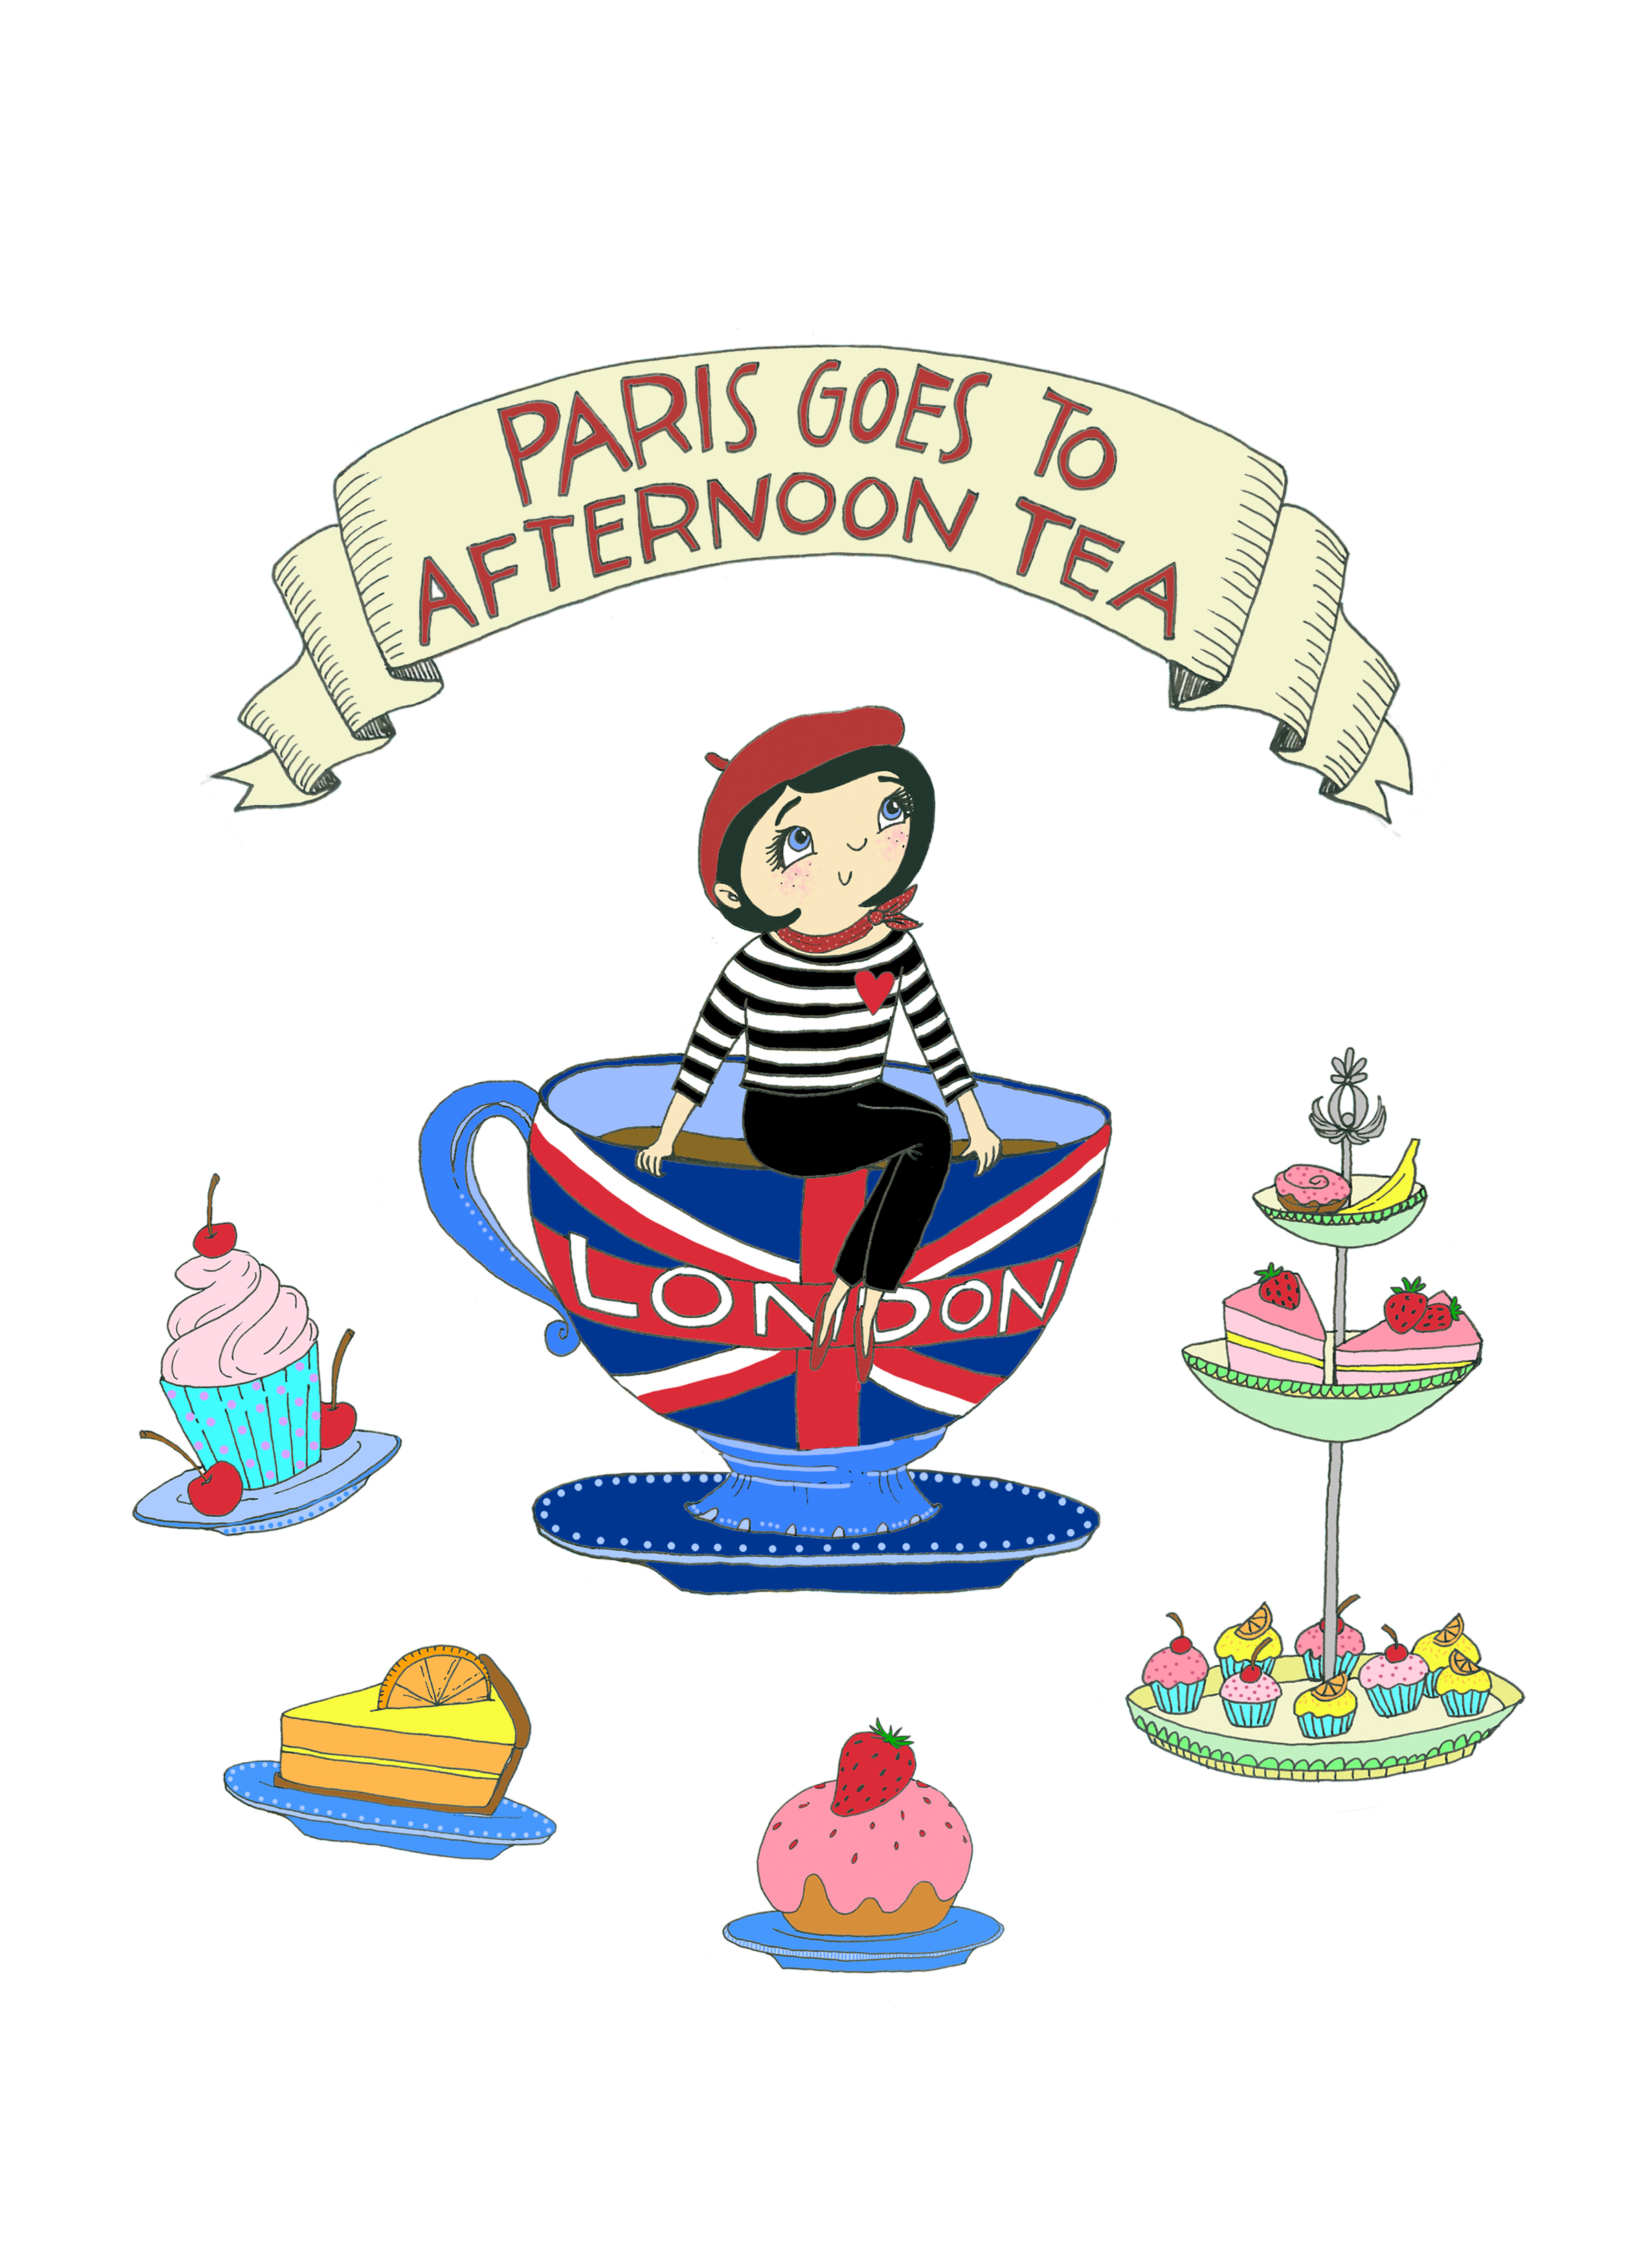 Paris Goes to Afternoon Tea